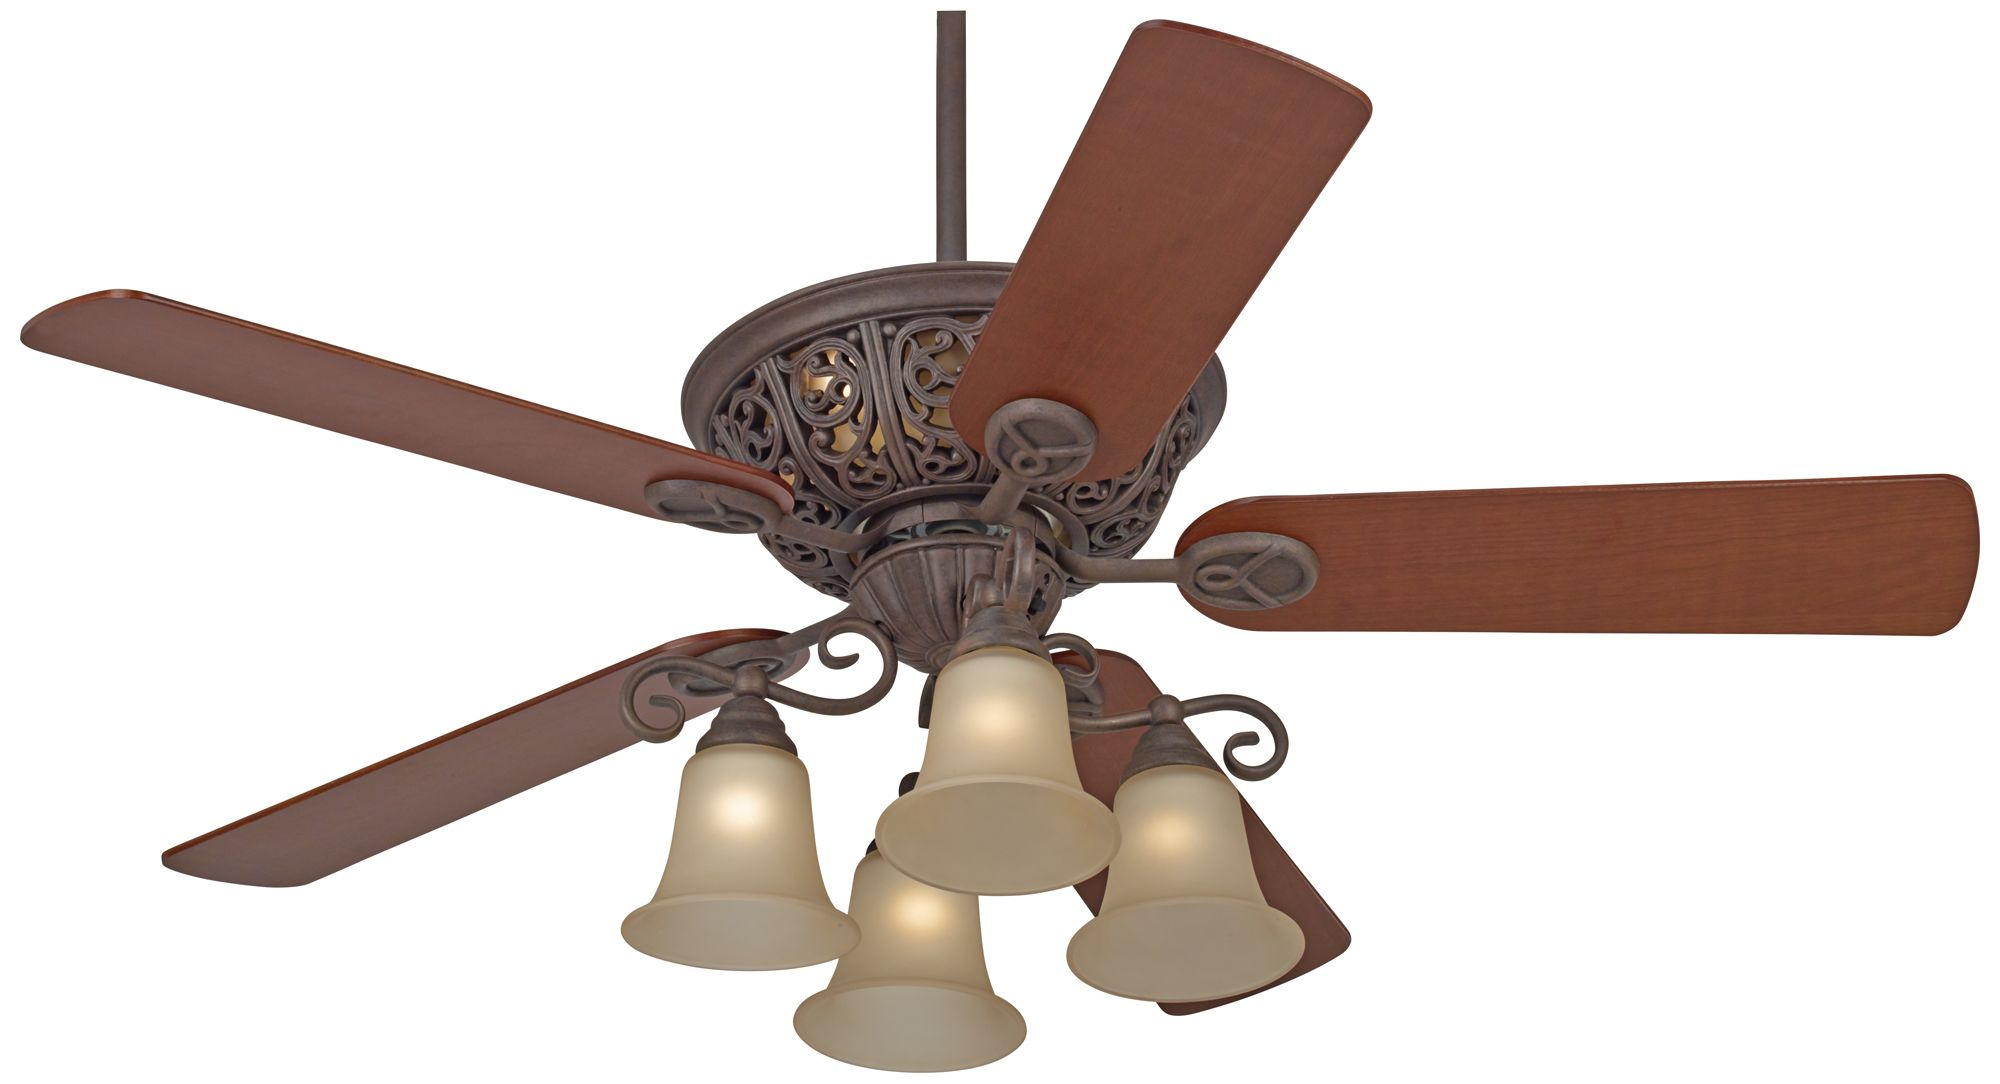 Chateau Deville Ceiling Fan